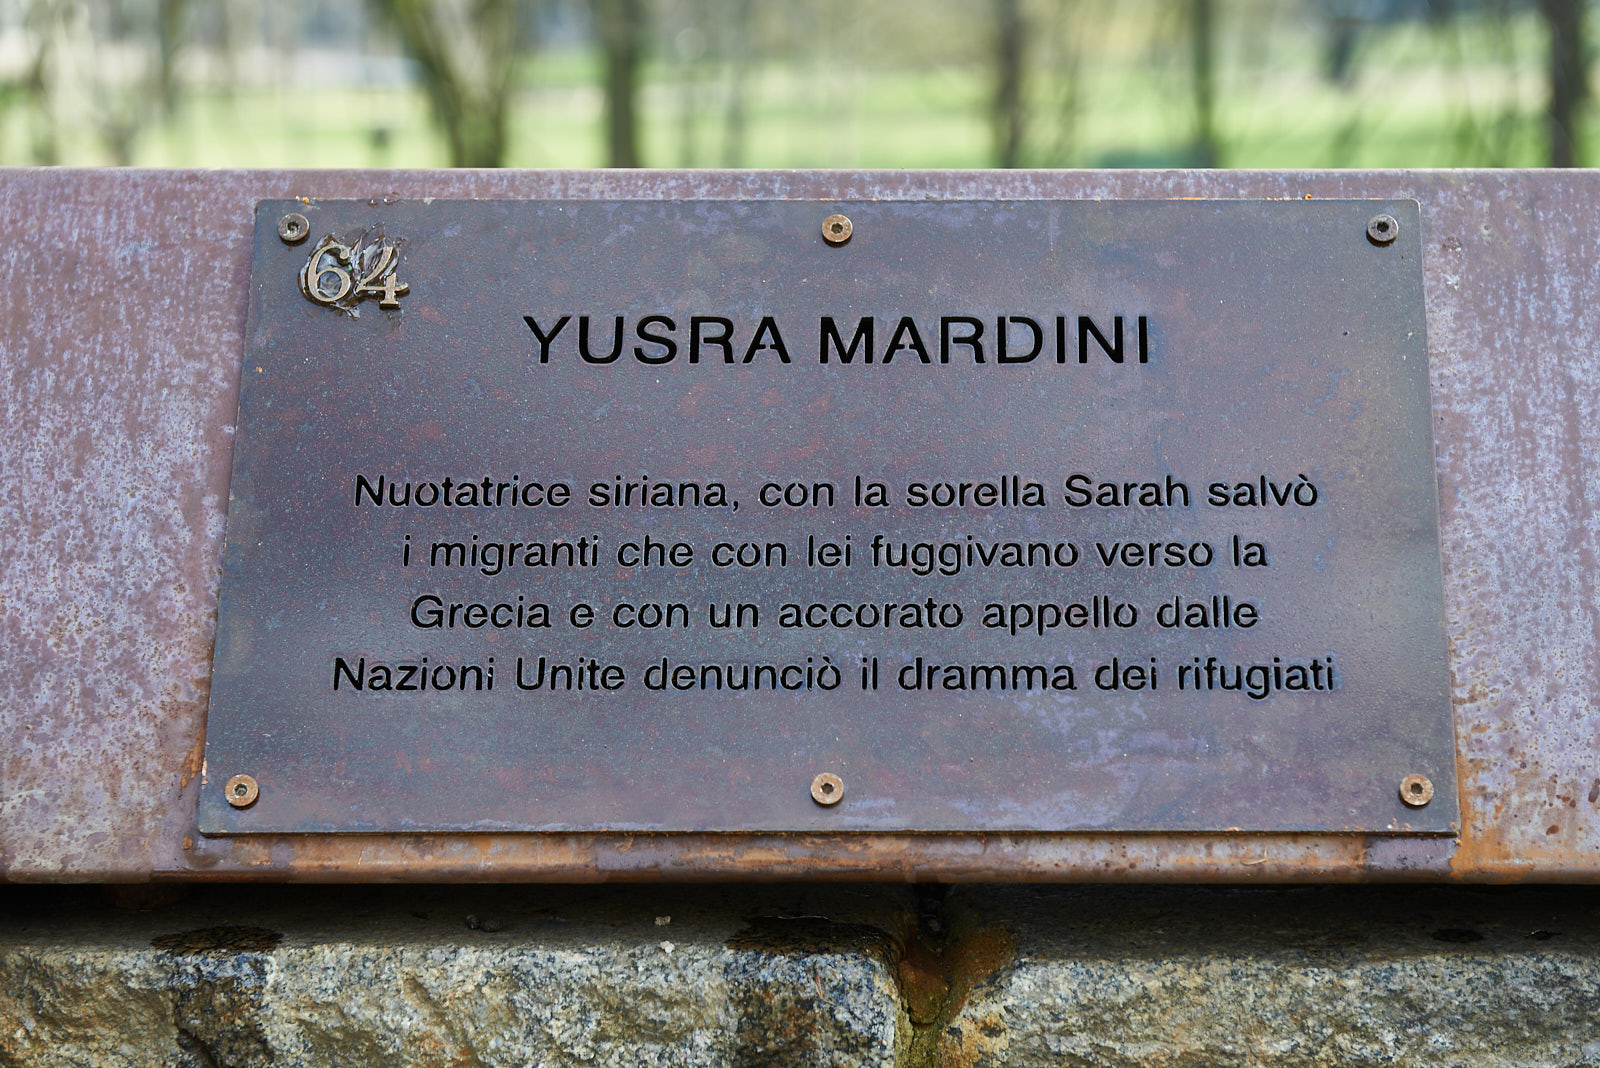 Plaque dedicated to Yusra Mardini